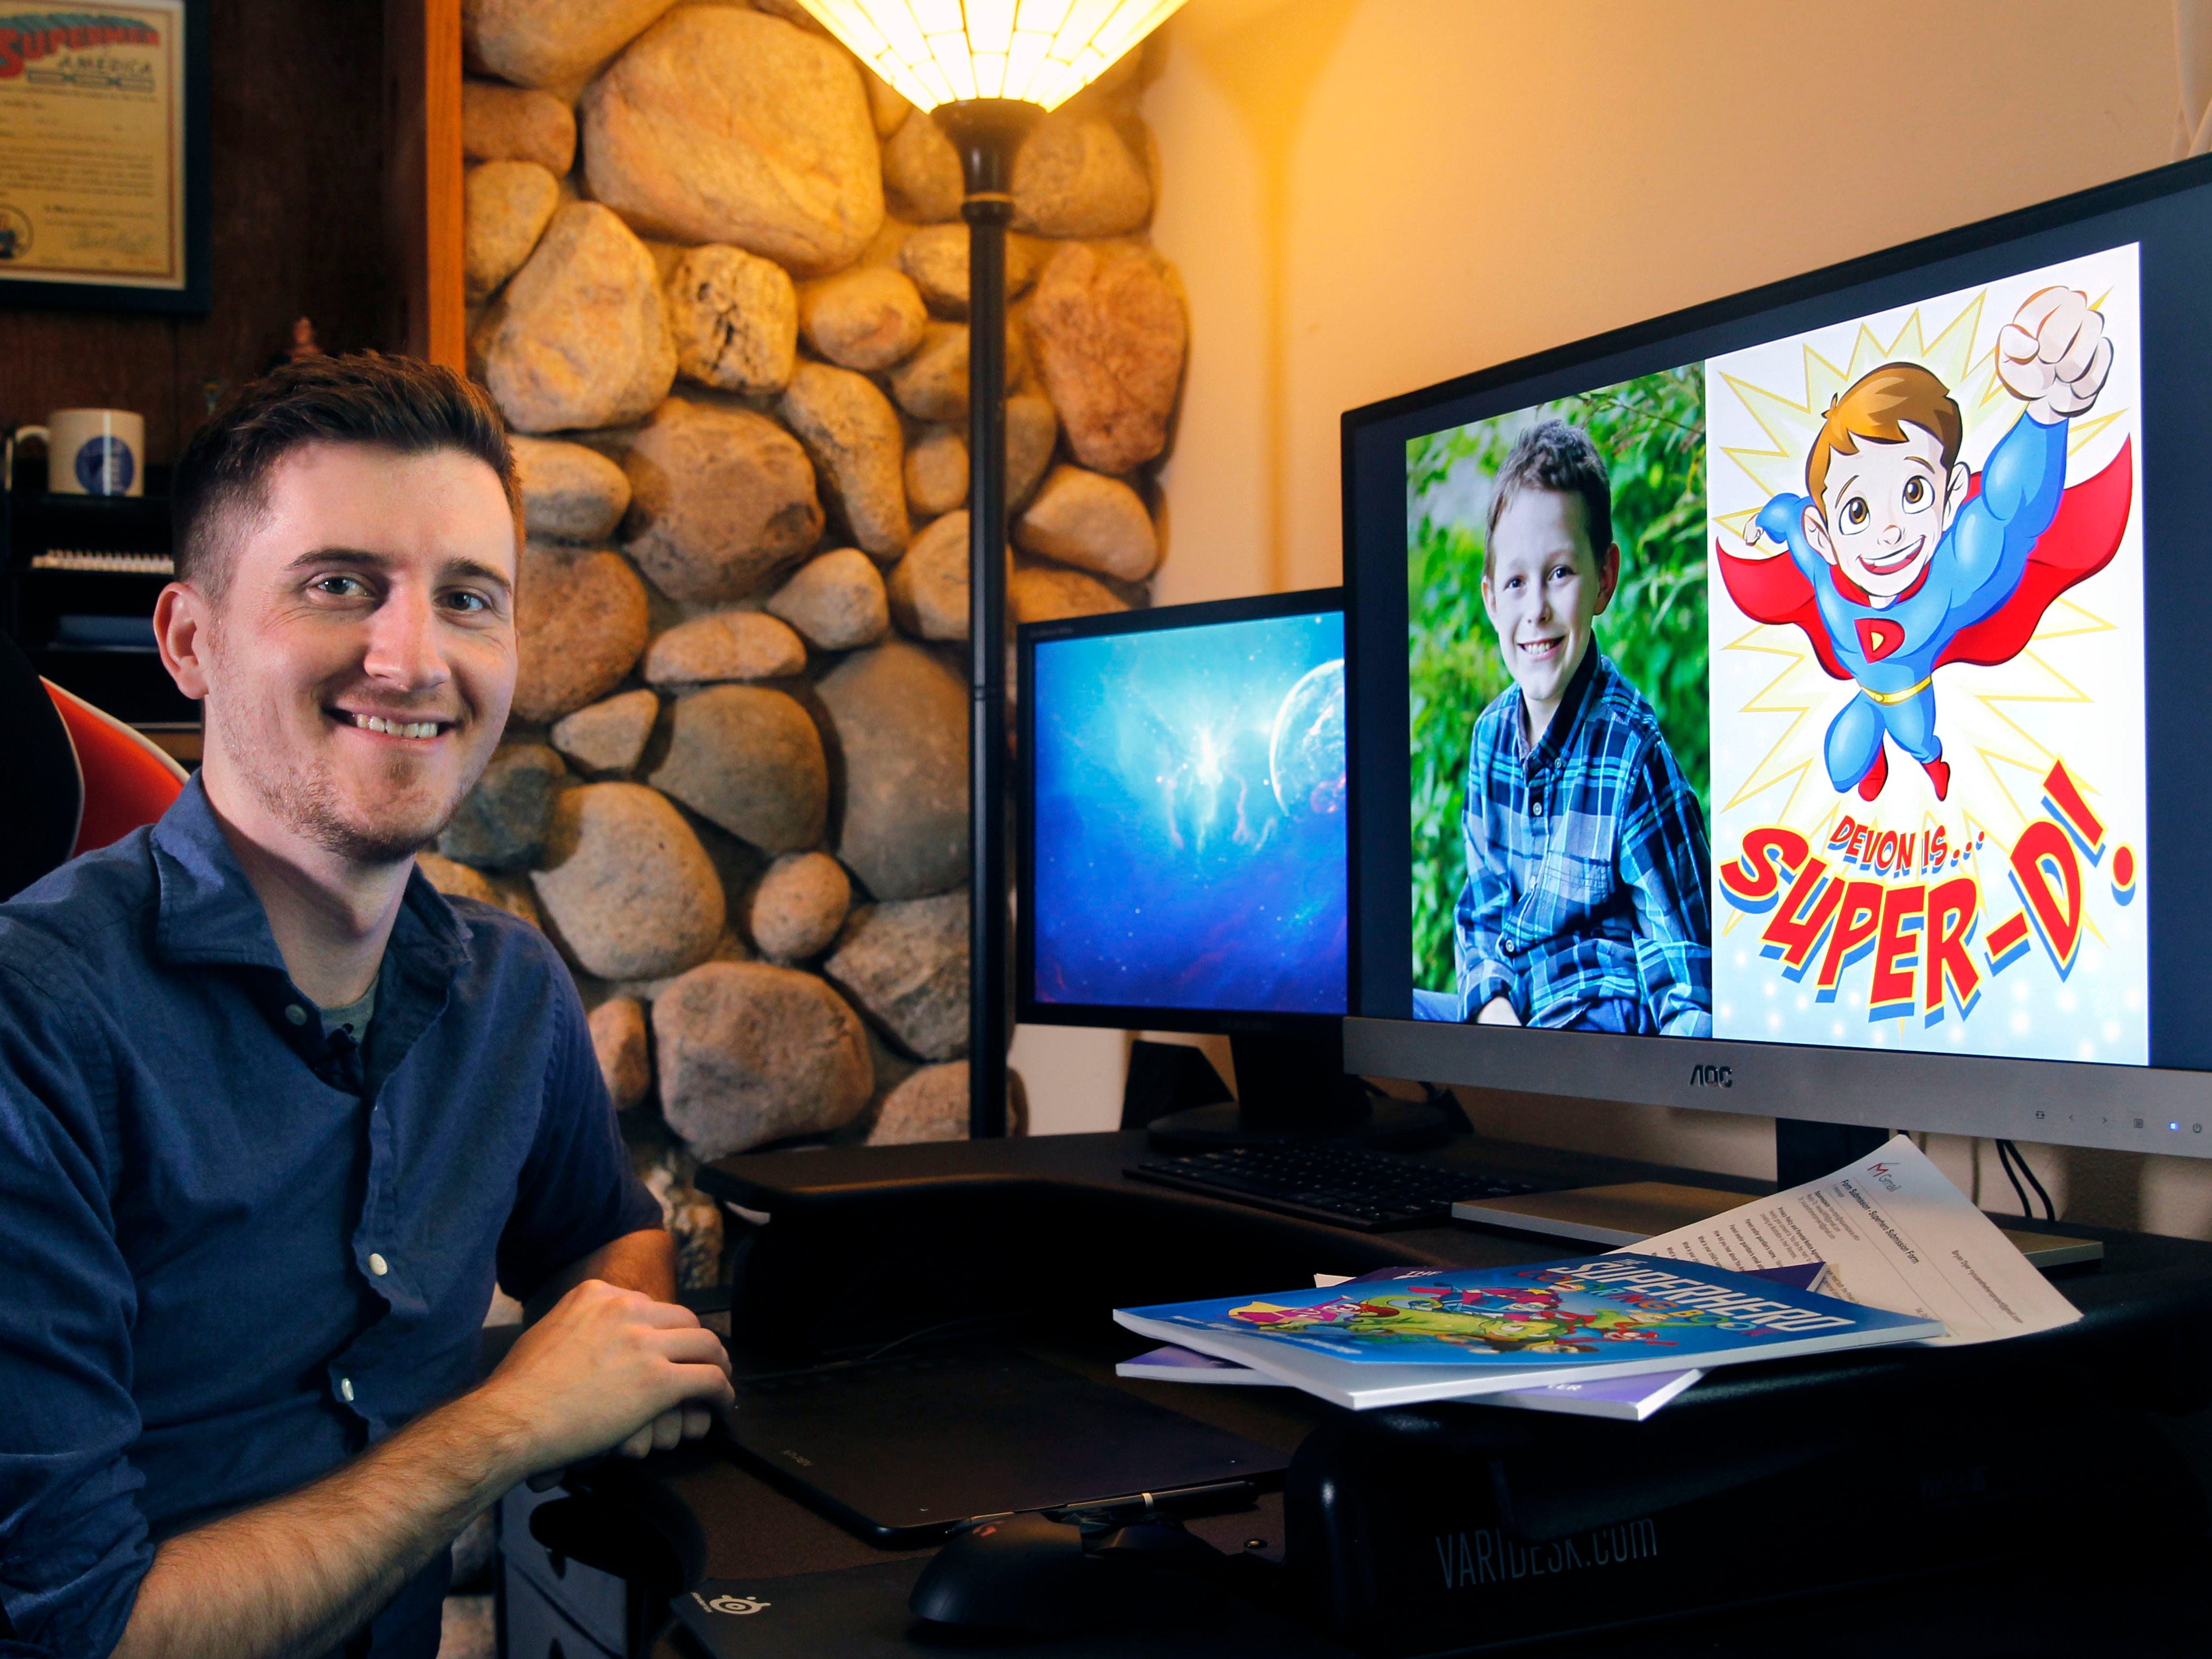 Bryan Dyer, owner of You Are the Hero,  is an illustrator for kids with chronic or critical conditions. On the monitor is Devon Sweeney, one of his superhero creations seen on Aug. 3, 2018, Germantown.